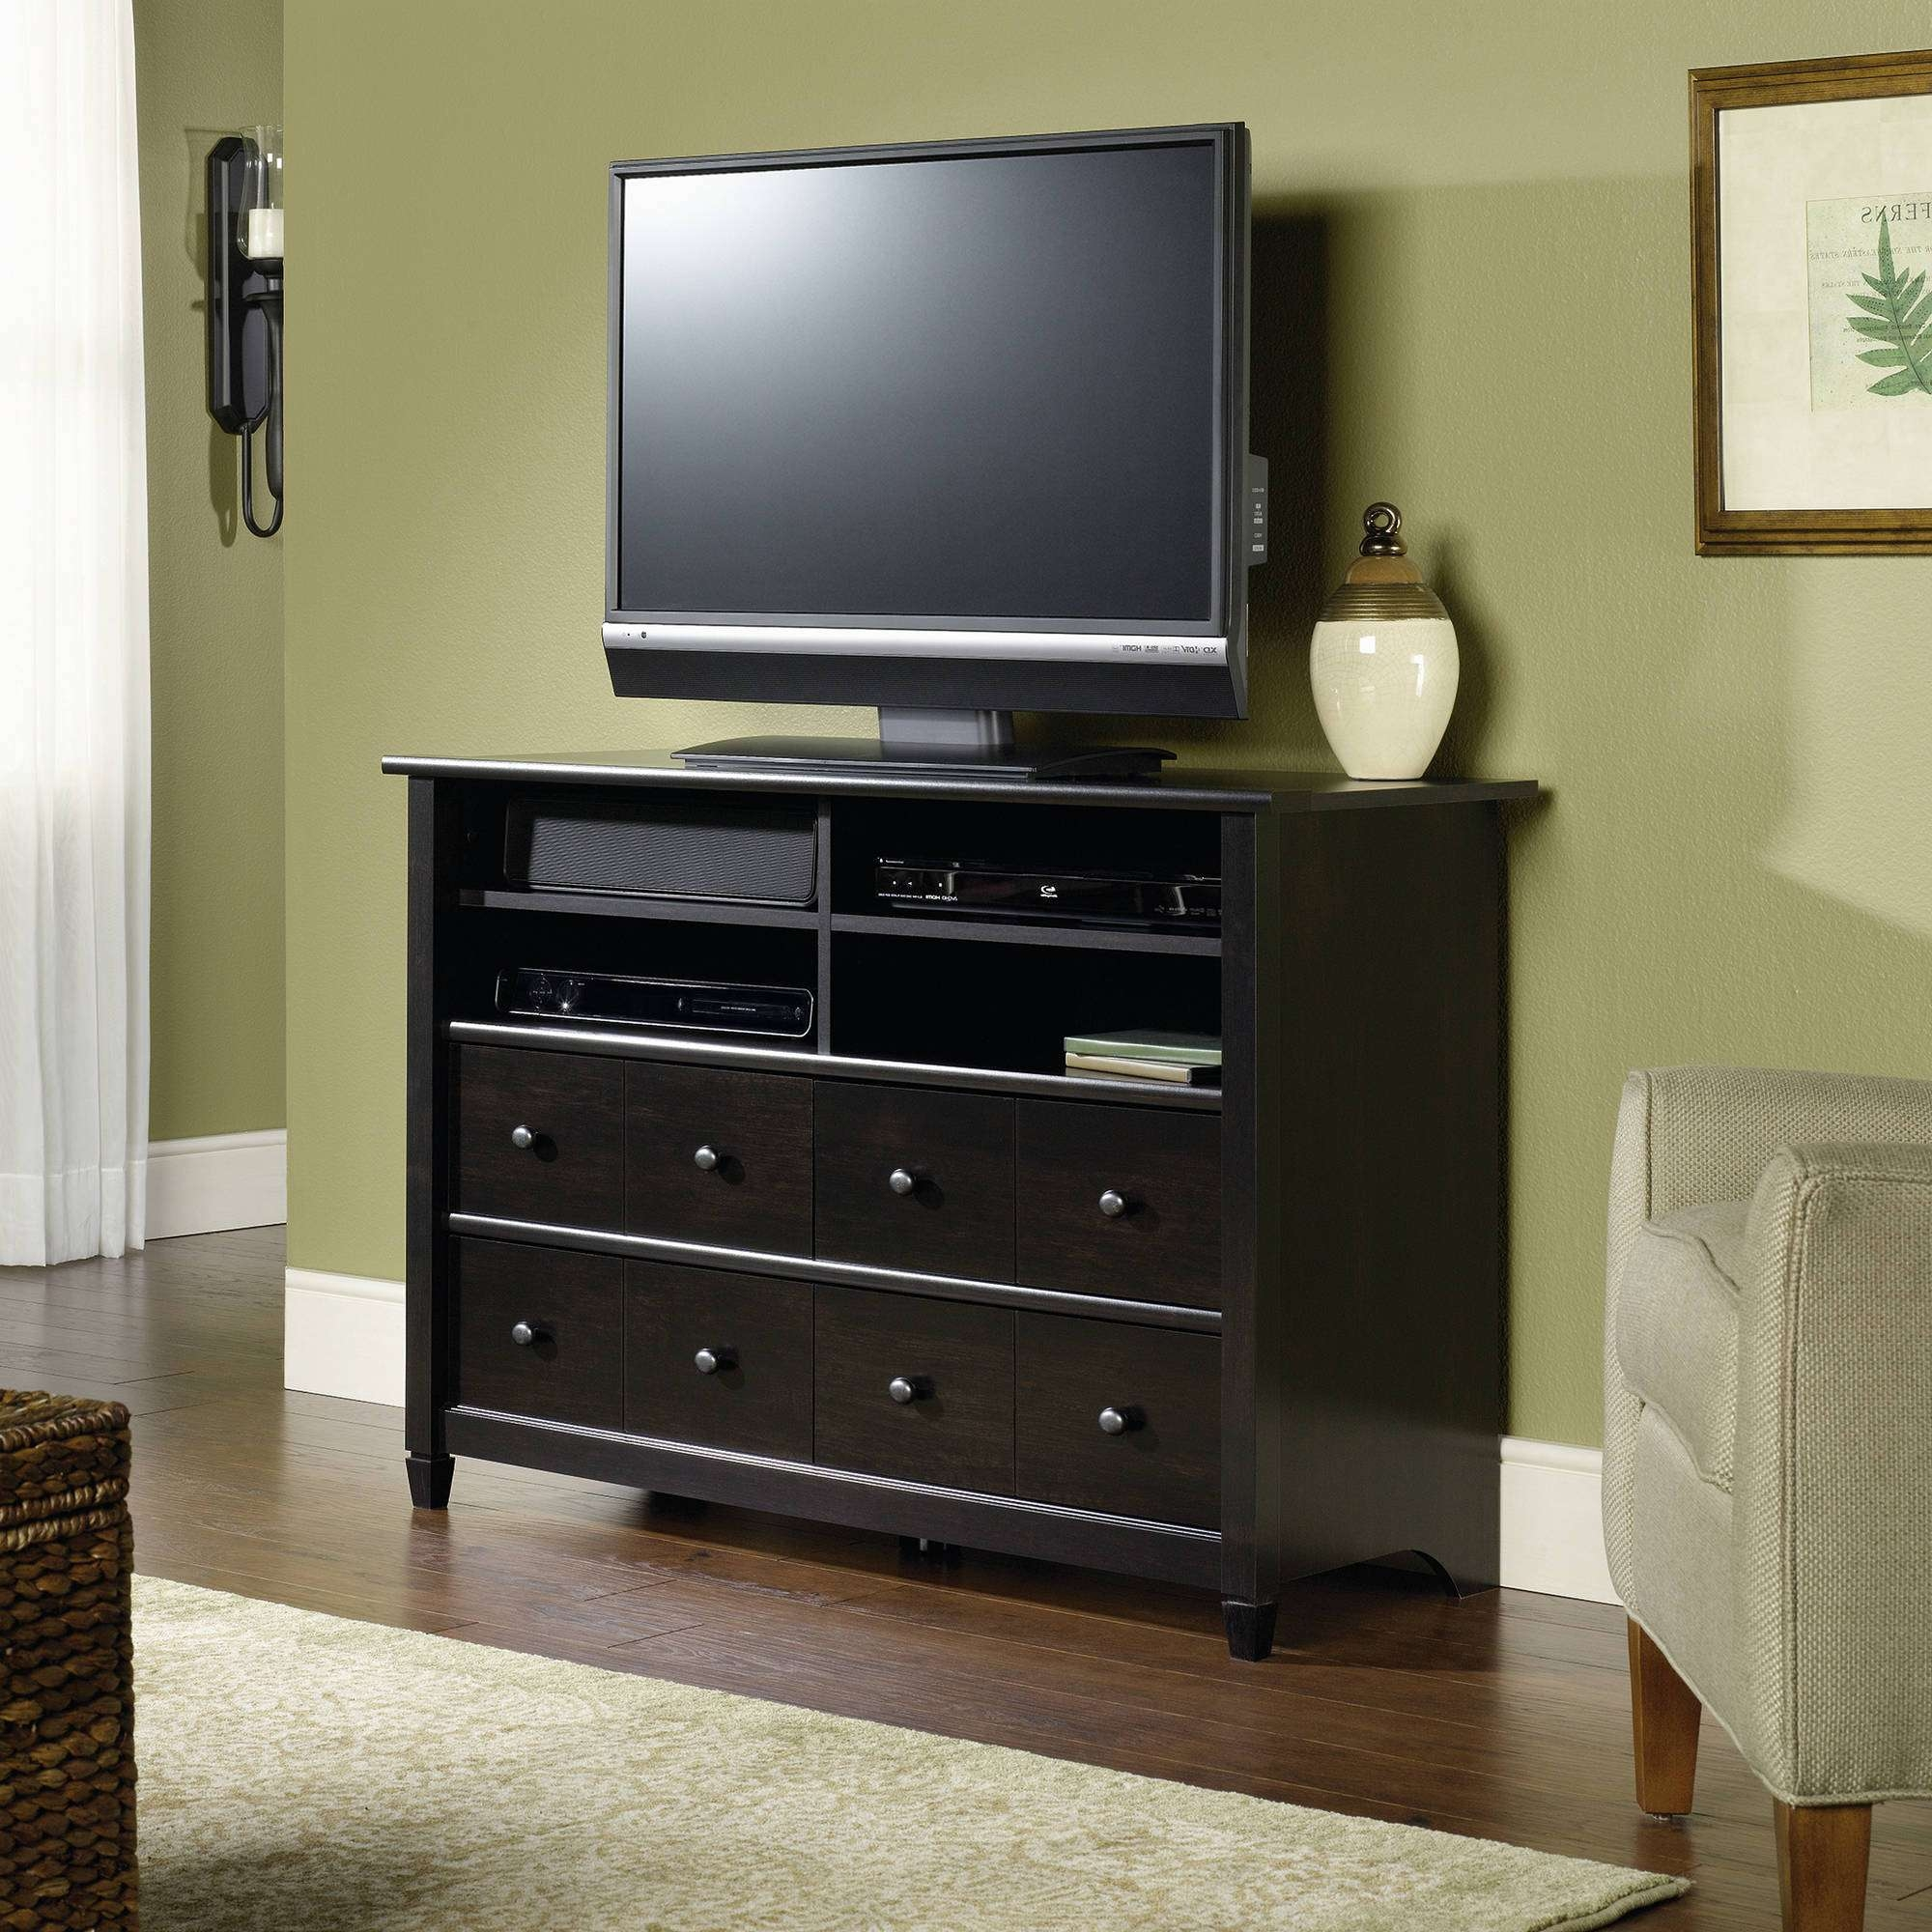 "Sauder Edge Water Tall Tv Stand For Tvs Up To 45"", Estate Black For Tv Cabinets With Drawers (View 15 of 20)"